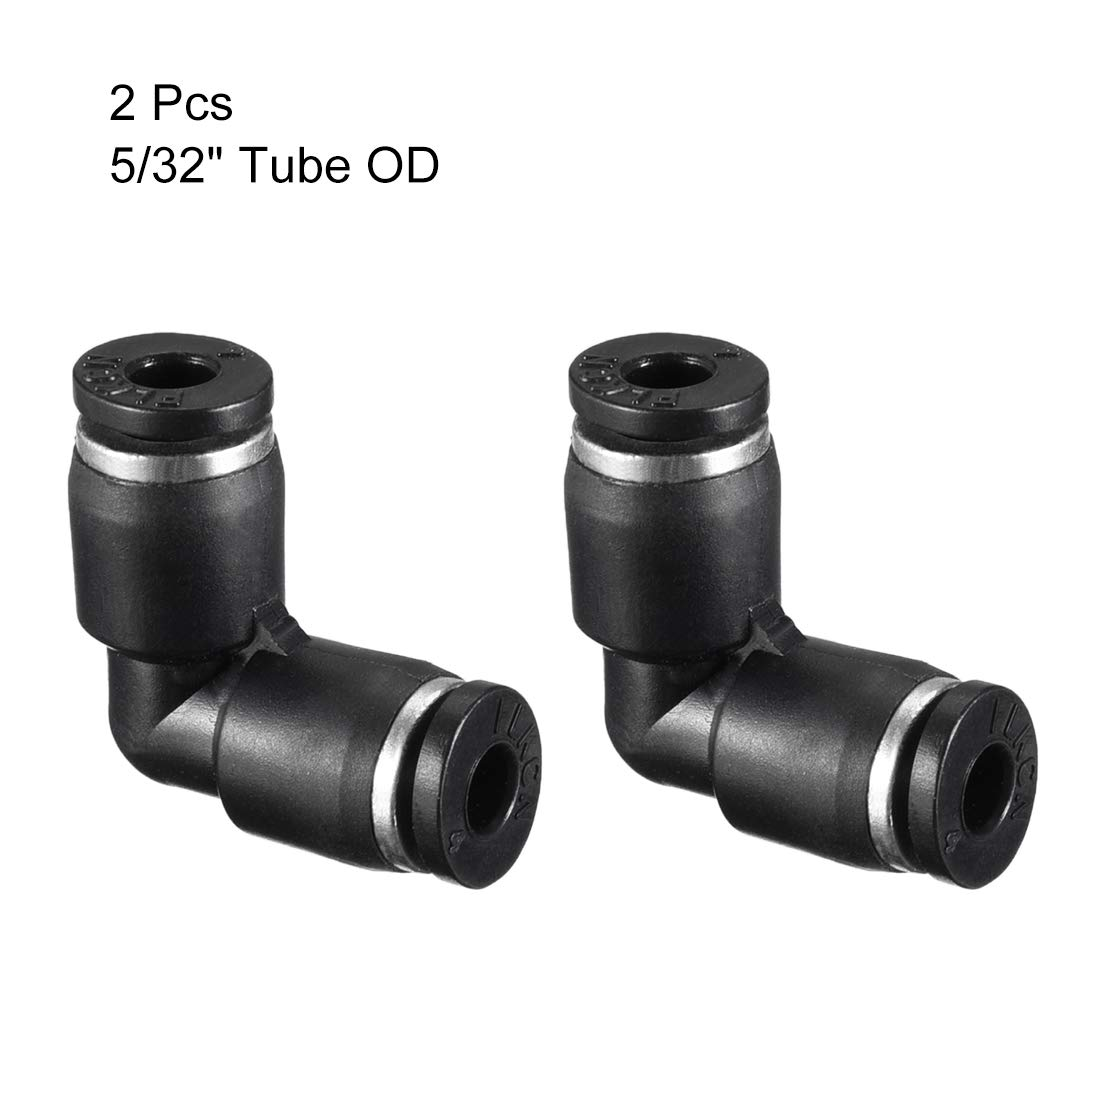 uxcell 10 x Pneumatic 6mm to 6mm One Touch Connectors 90 Degree Elbow Quick Fittings